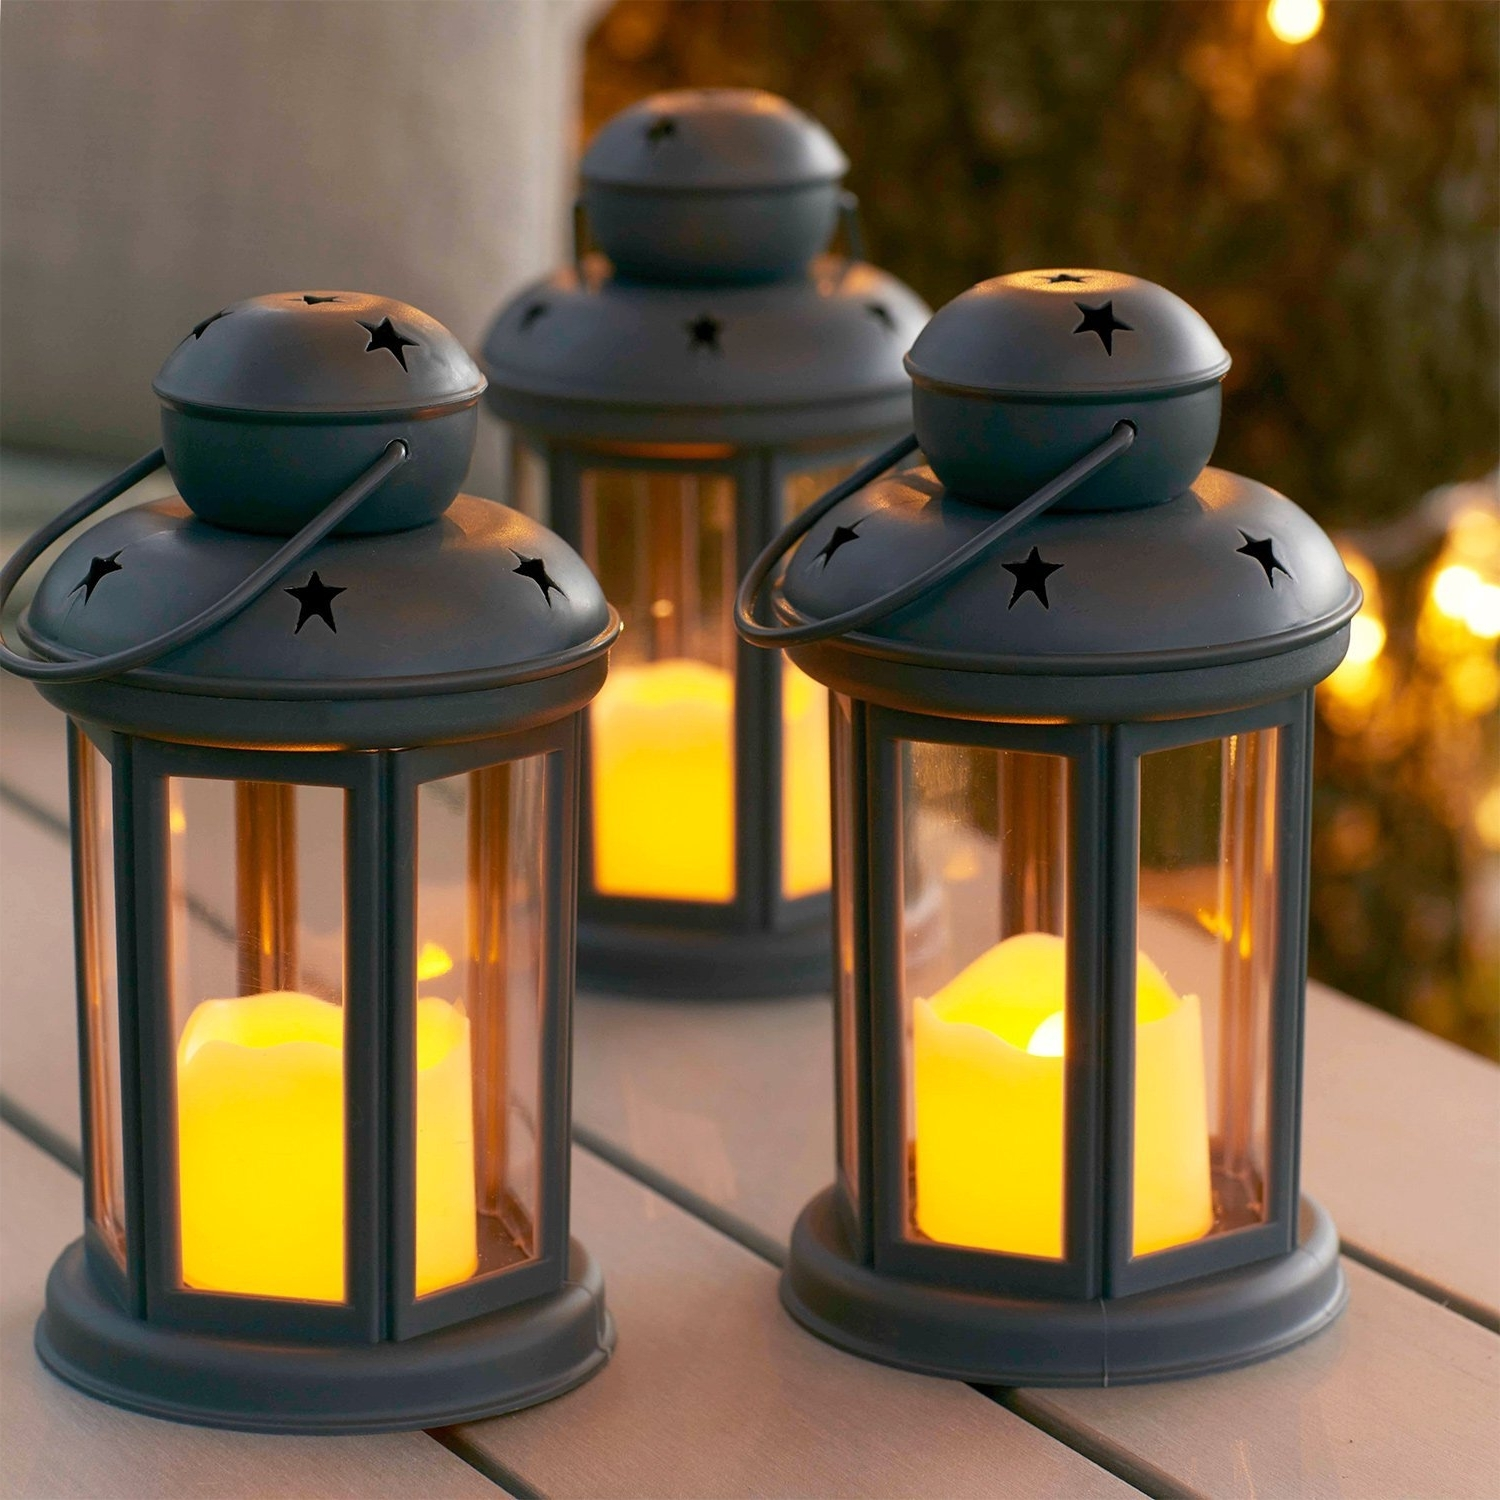 Plastic Lanterns Outdoor Lights – Awesome Home Pertaining To Newest Outdoor Plastic Lanterns (Gallery 7 of 20)